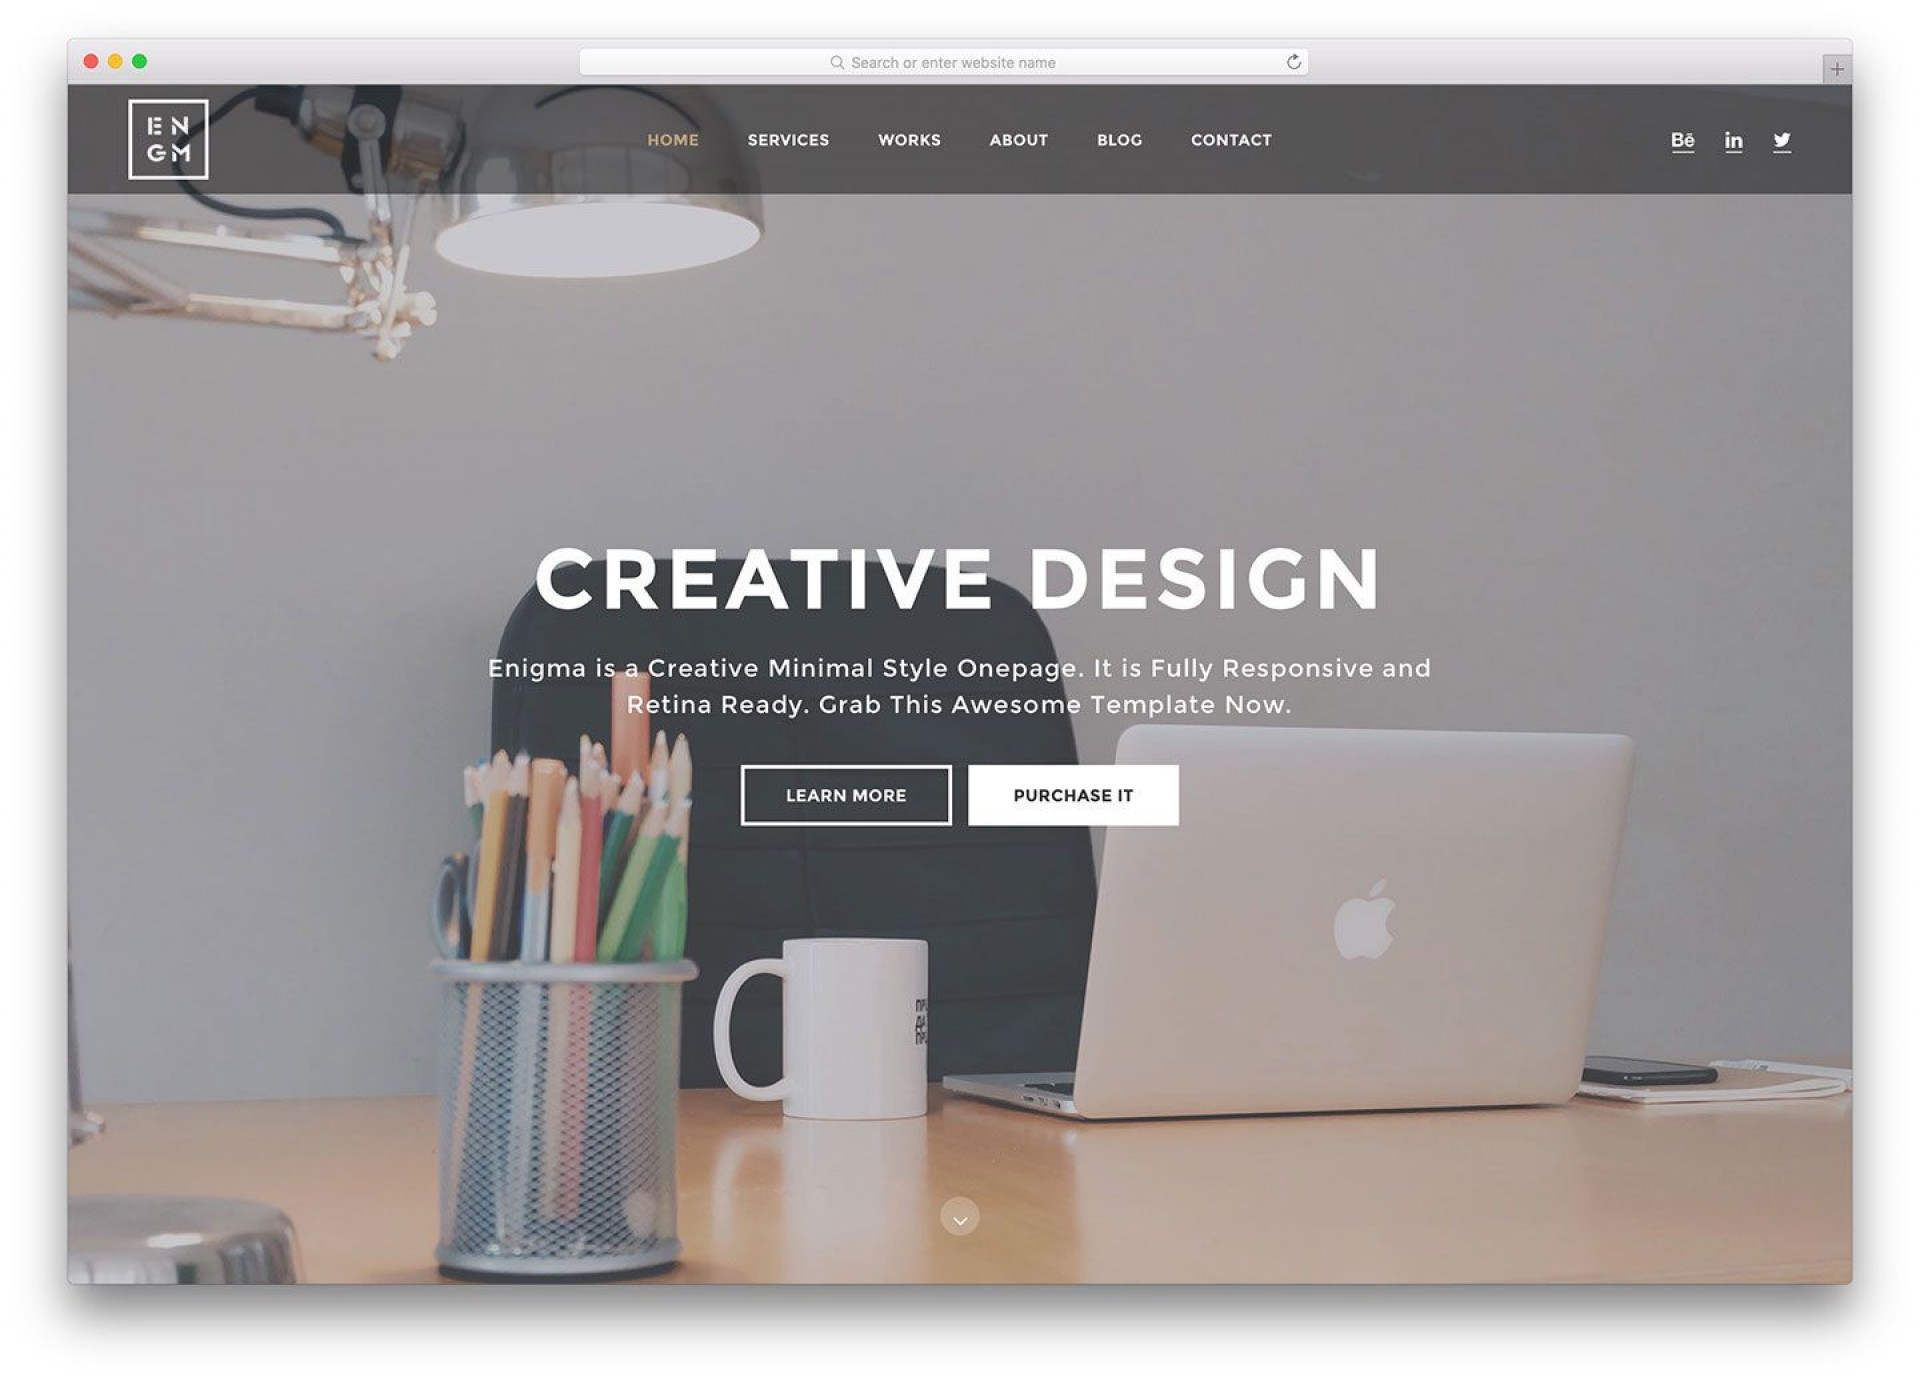 008 Formidable Website Template Html Download High Definition  Free With Cs Javascript Jquery Bootstrap Simple And1920